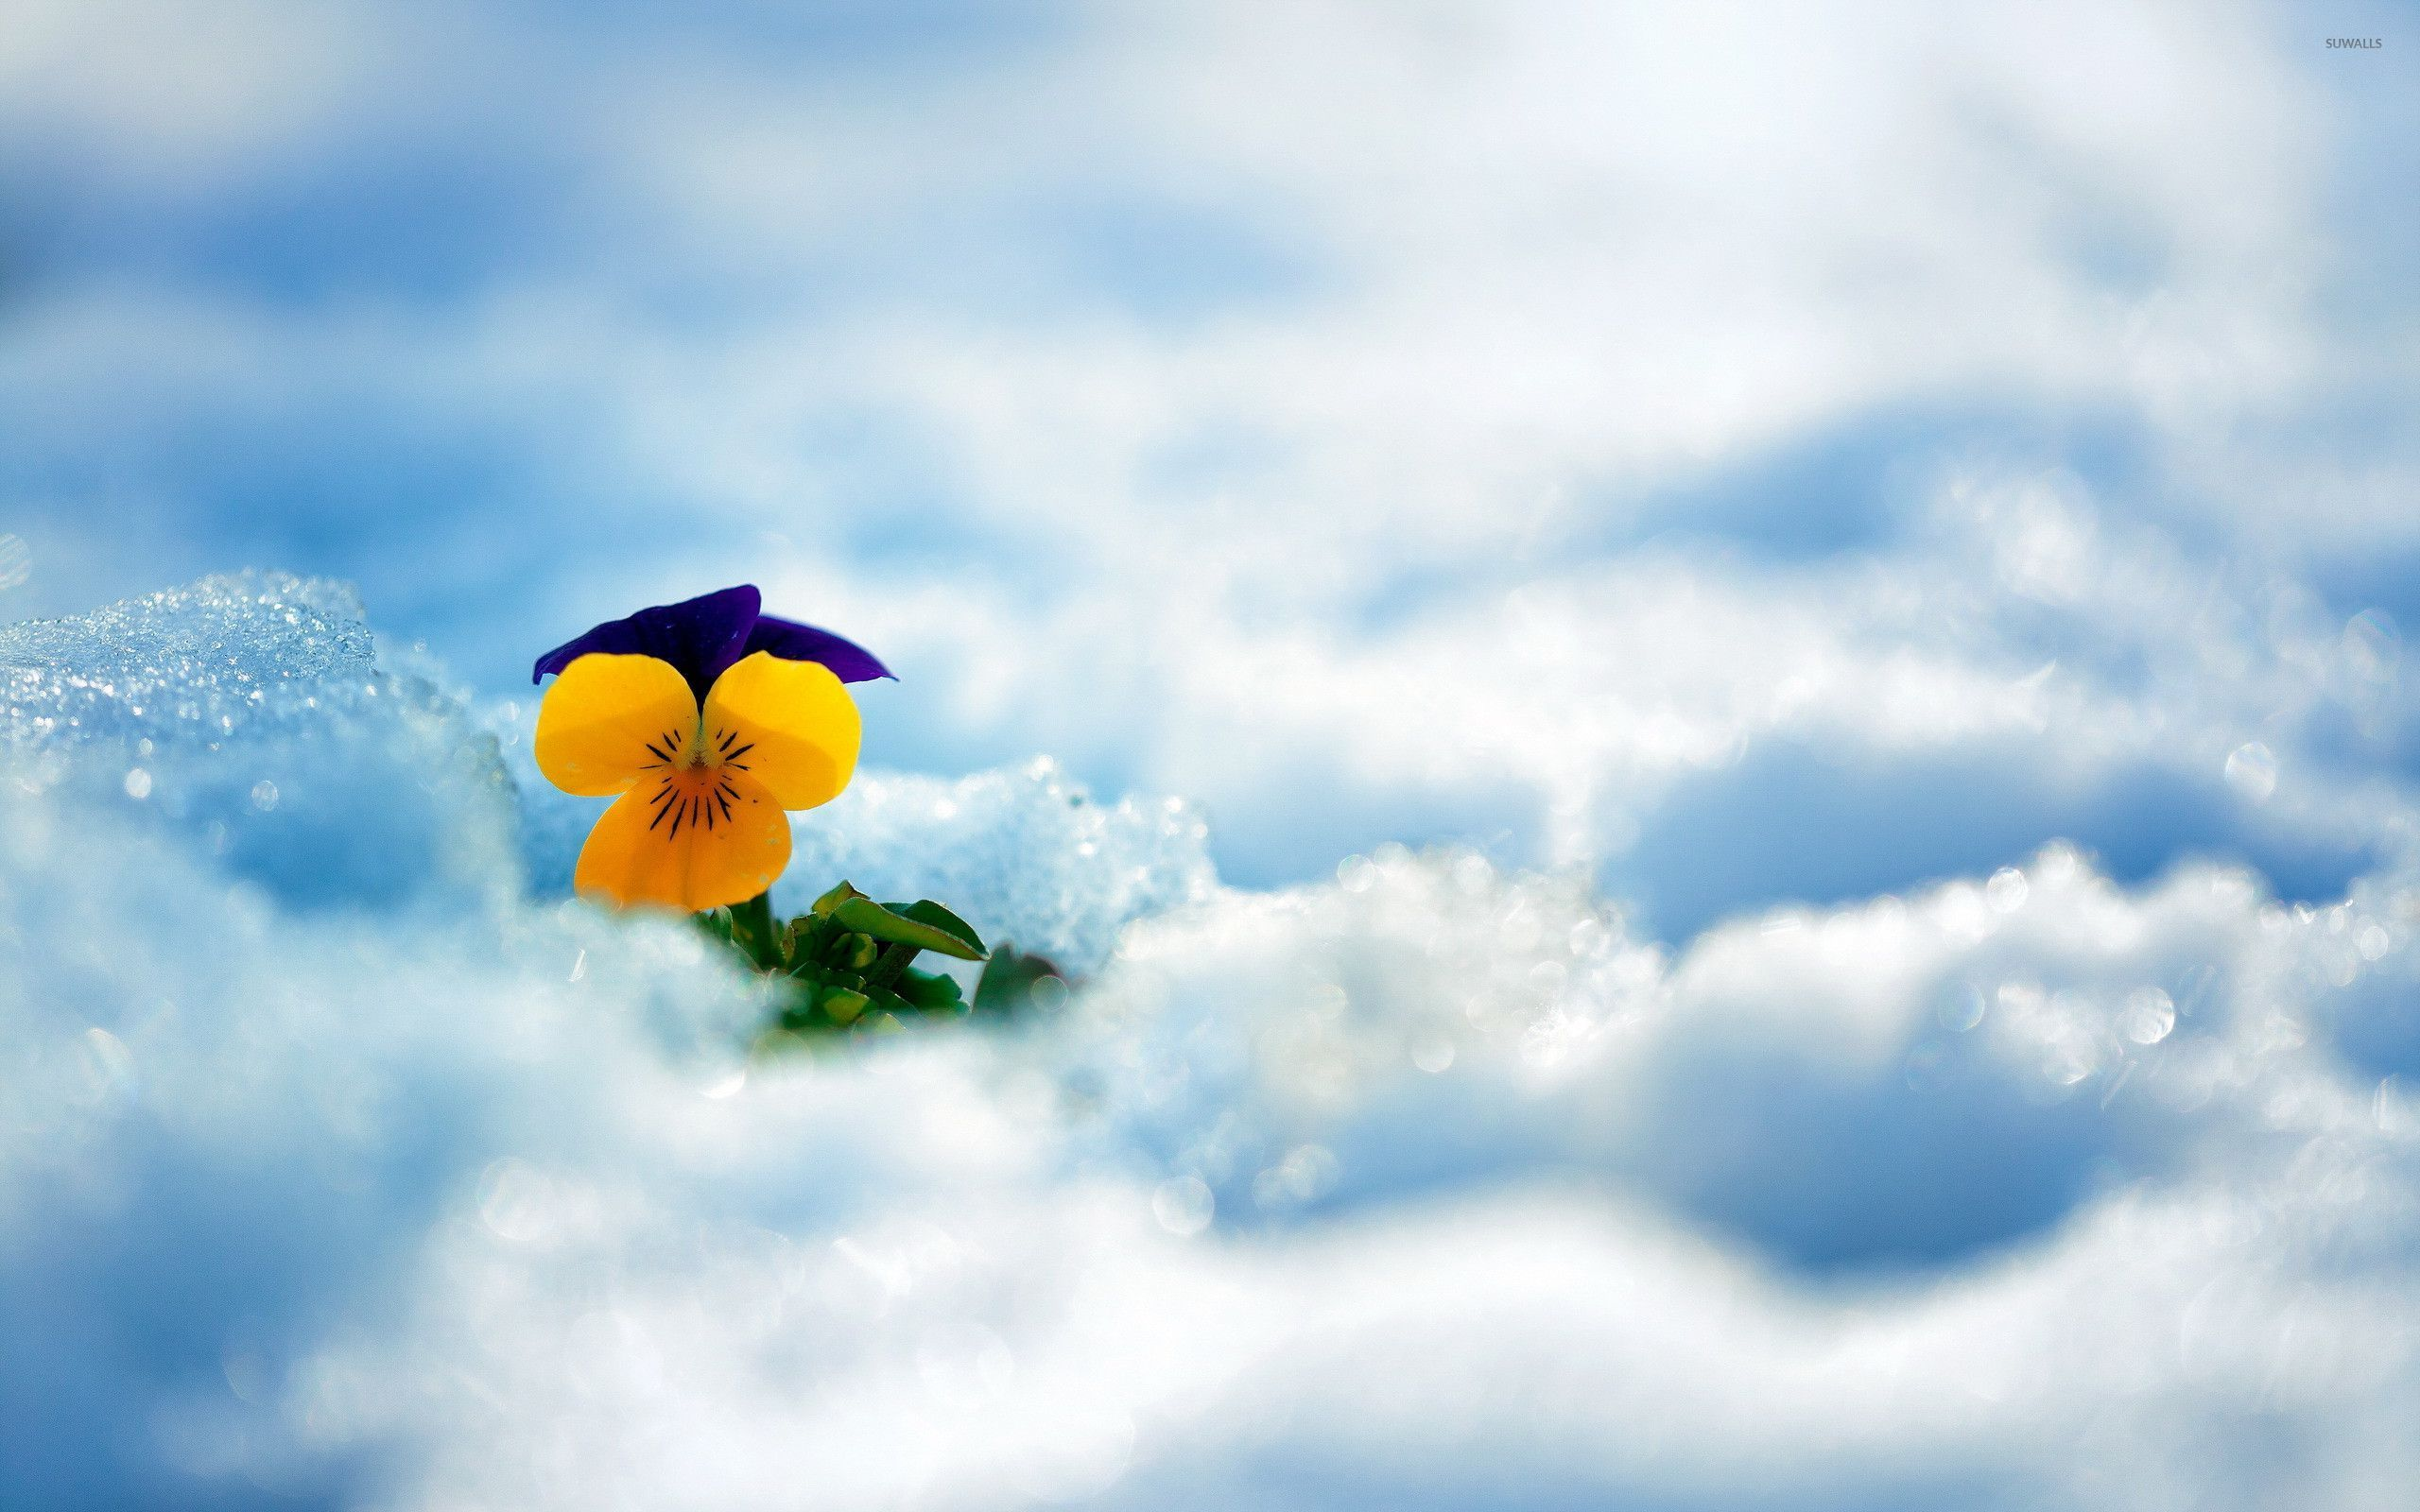 Pansy In The Snow Wallpaper Flower Wallpapers 28754